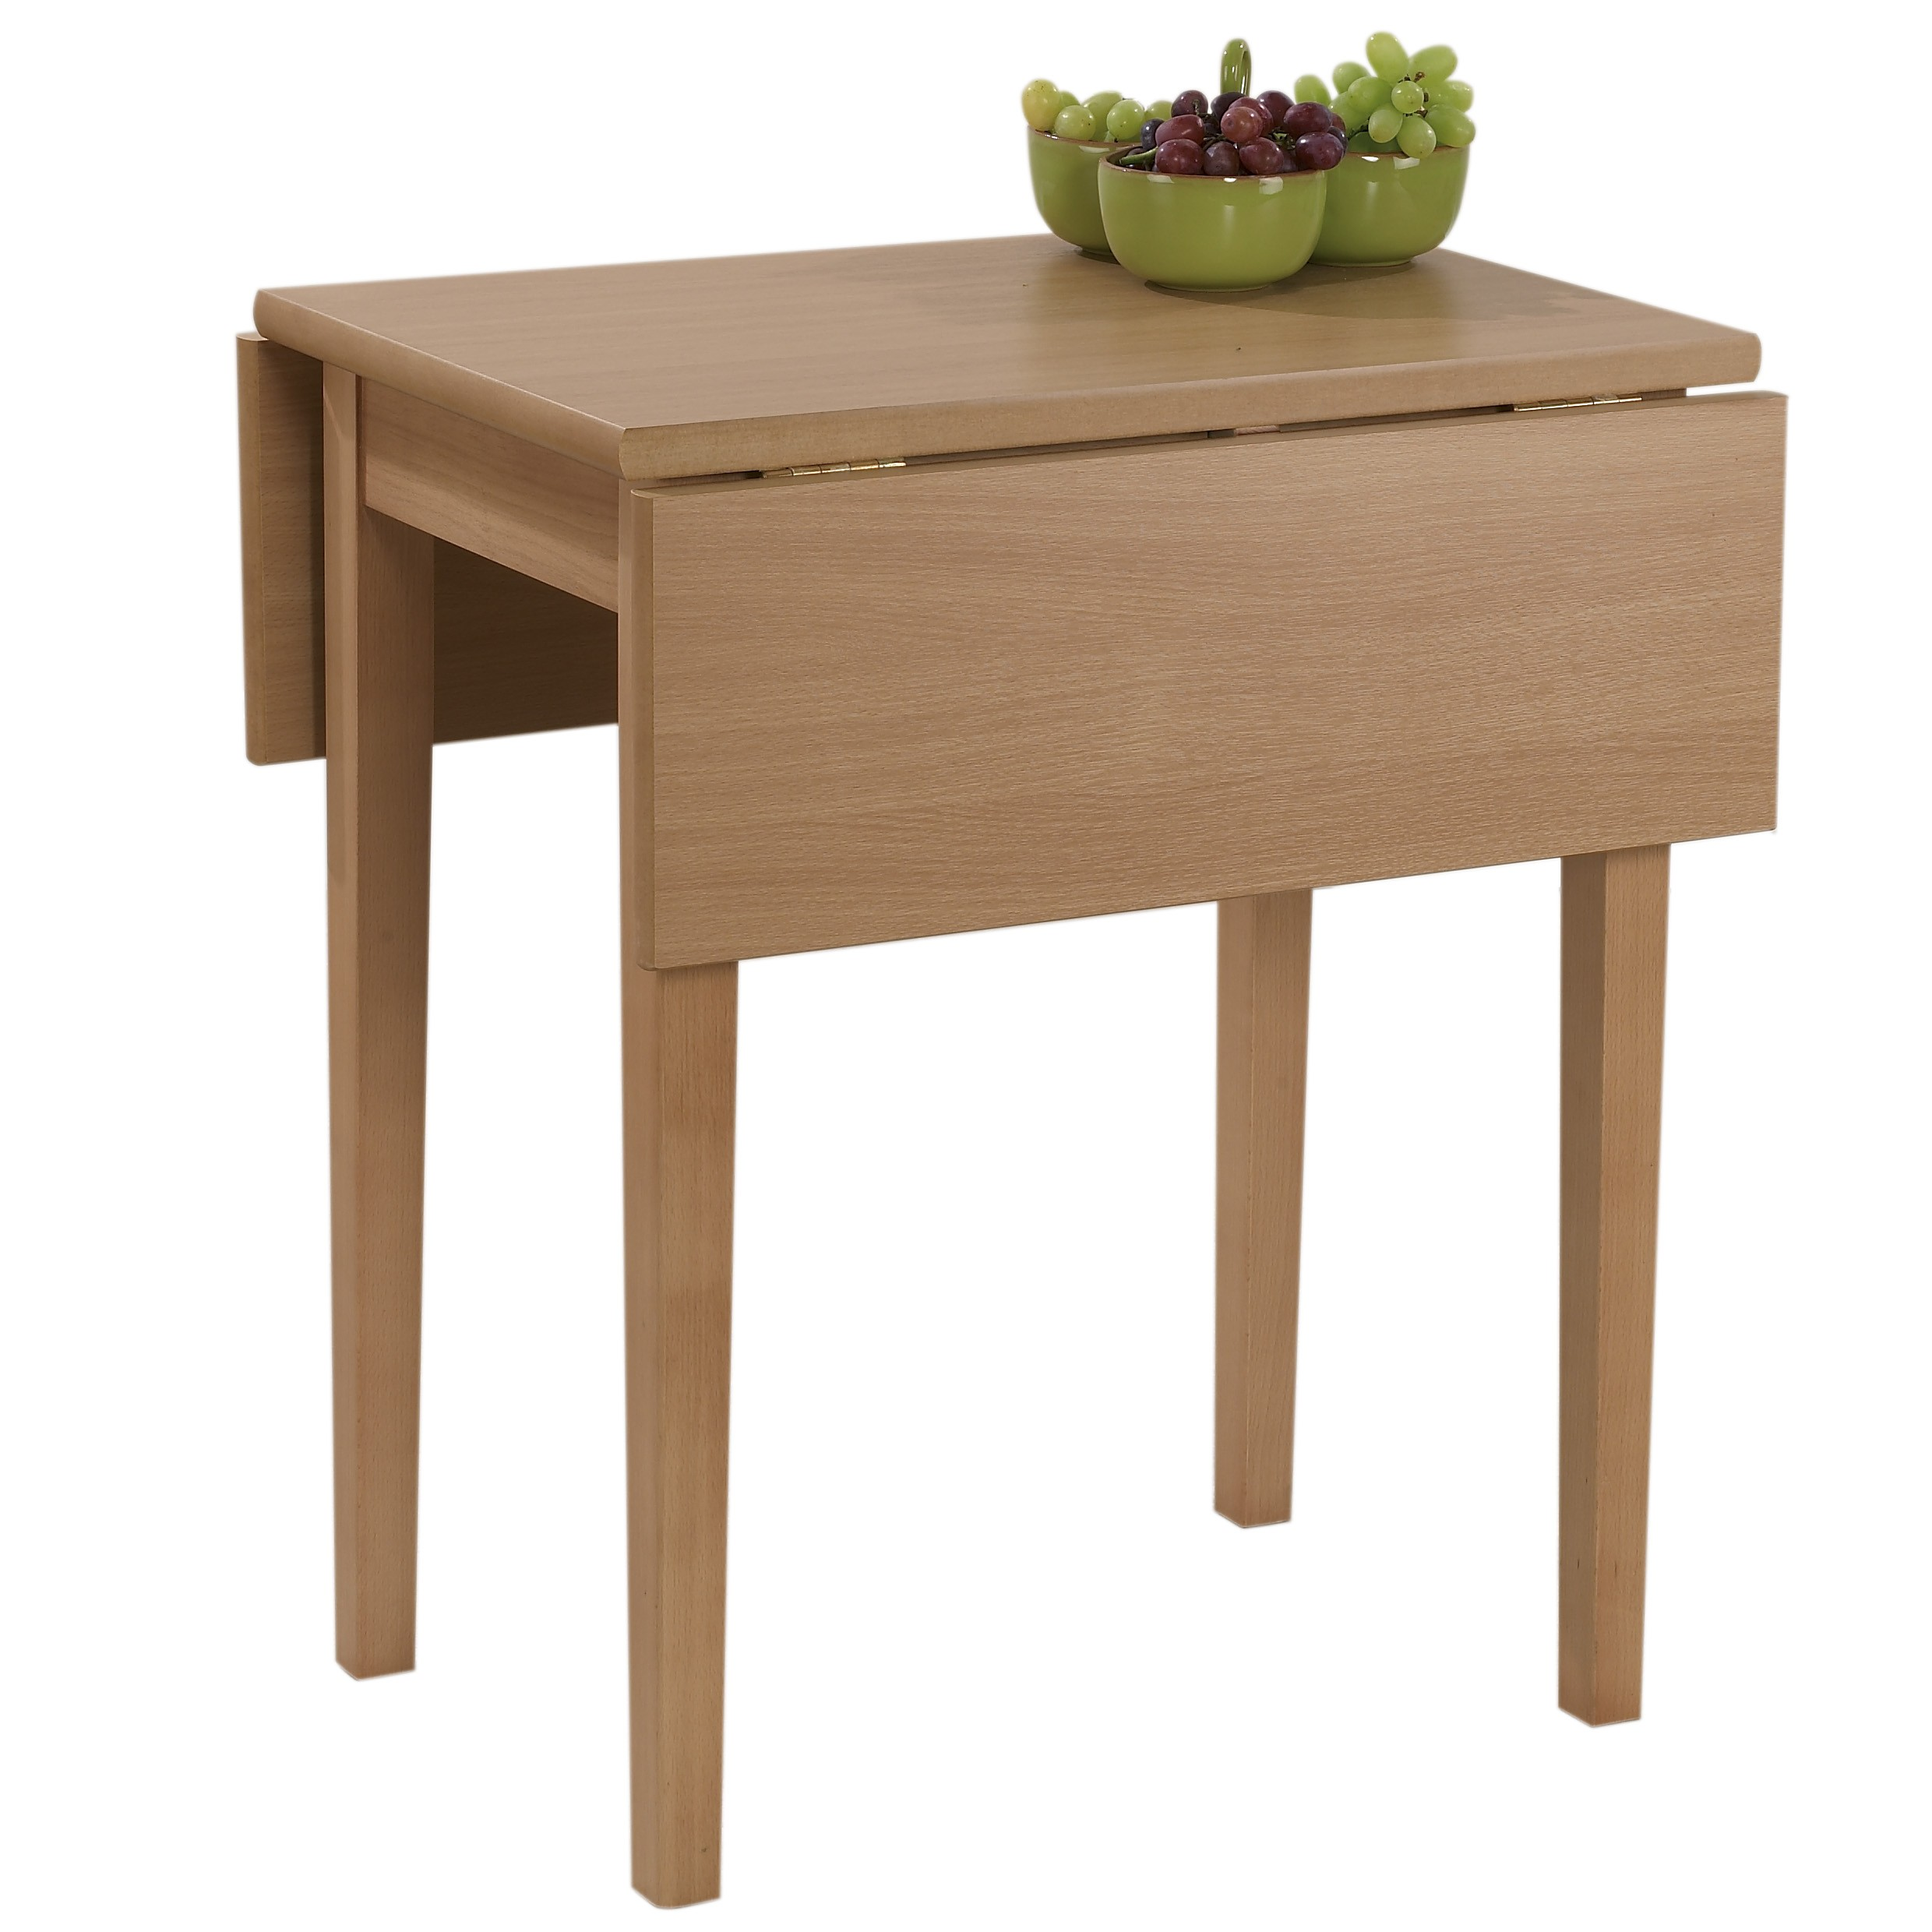 Modern Drop Leaf Tables Small Spaces Drop Leaf Tables For Small Spaces Homesfeed